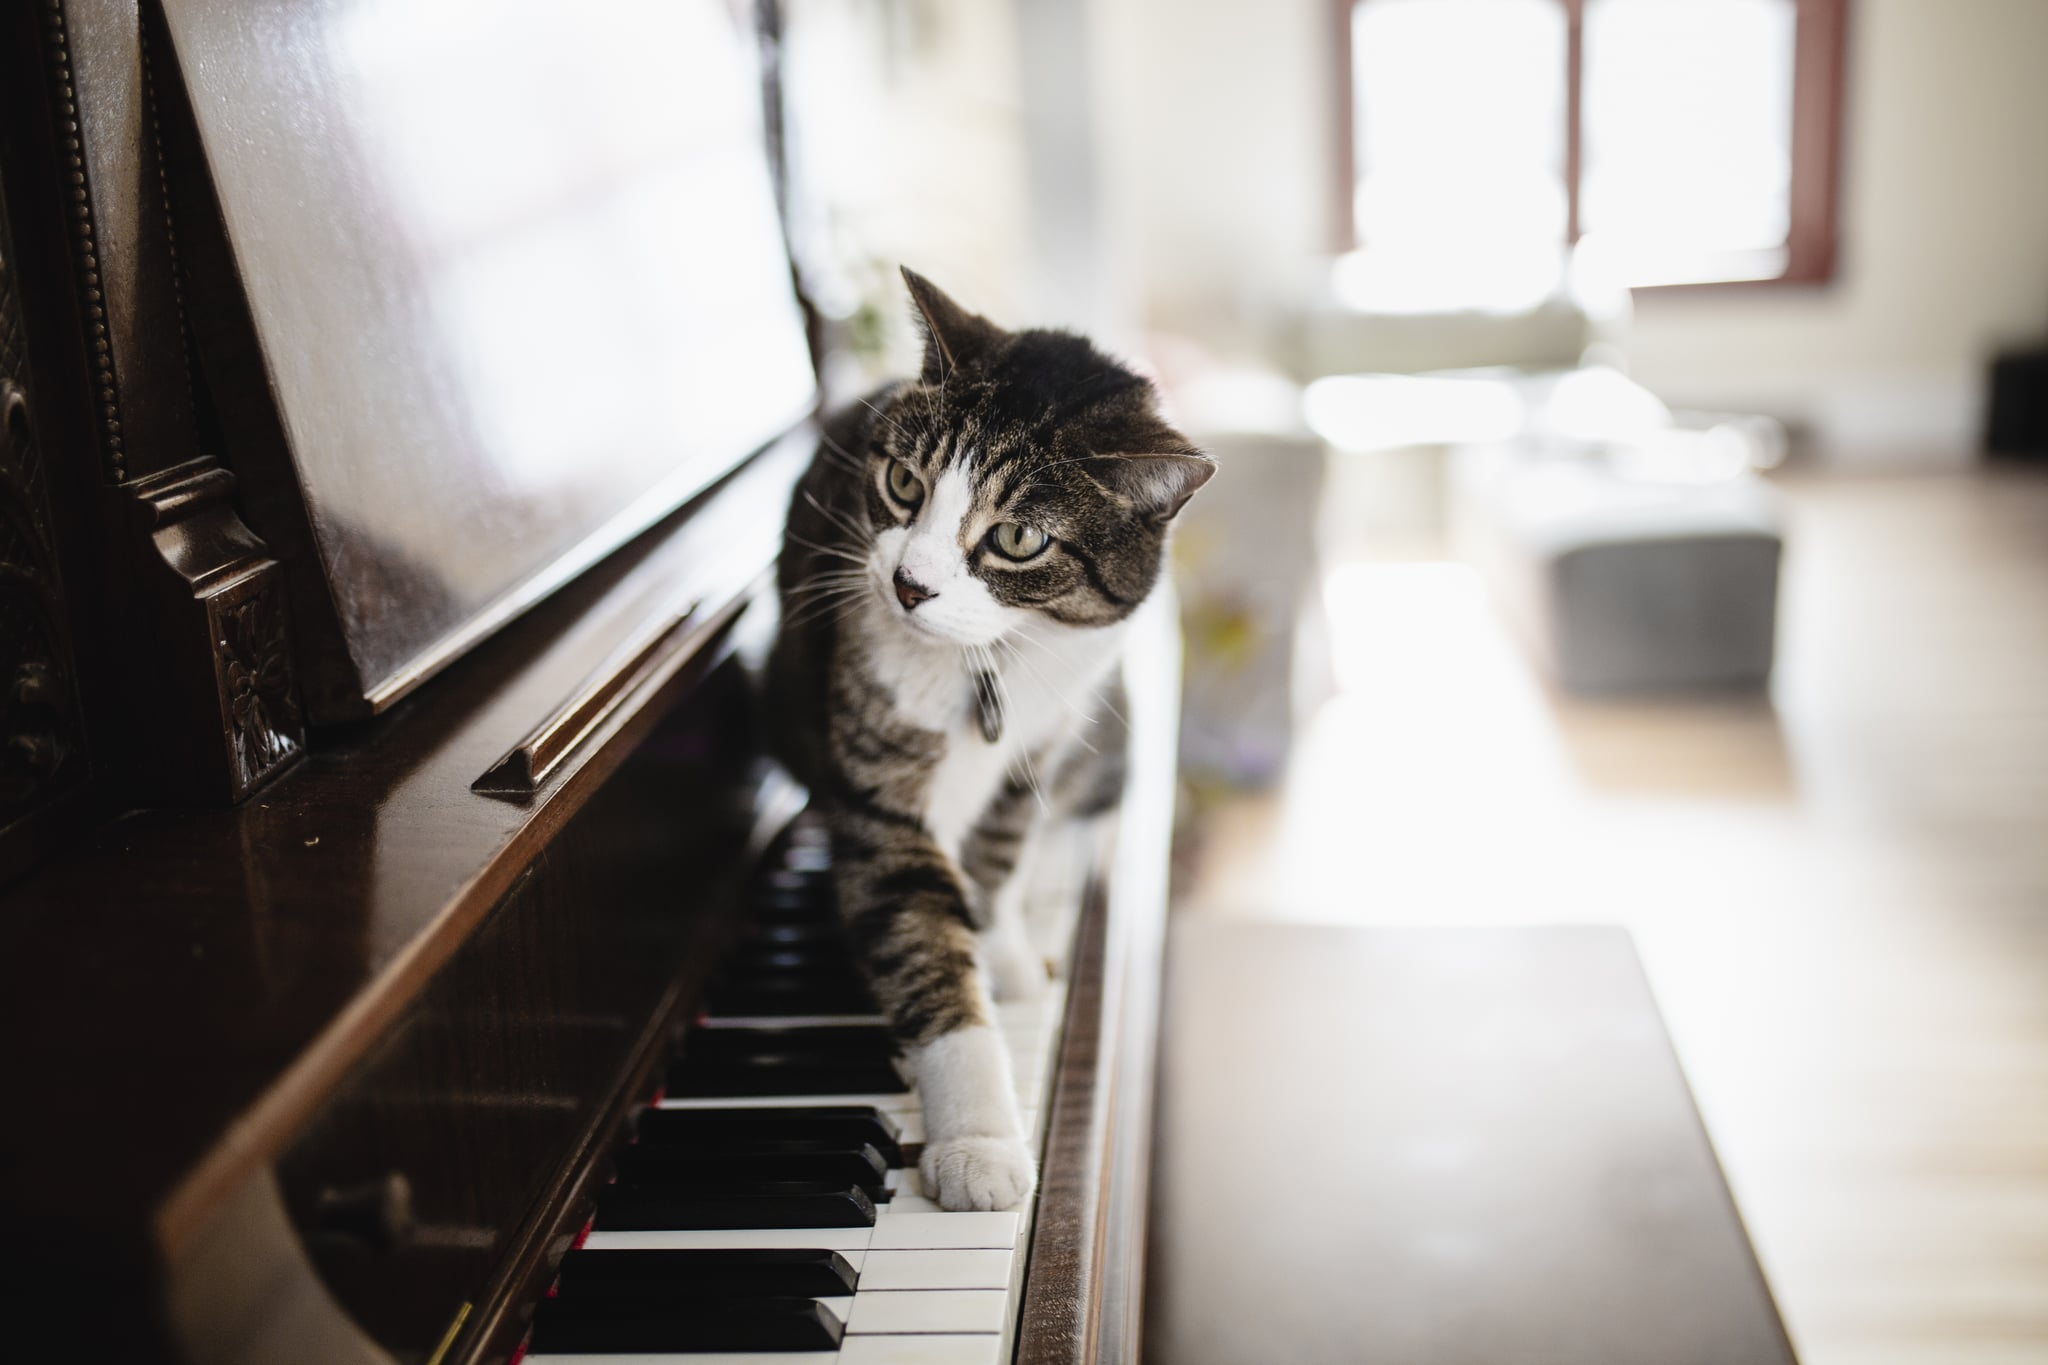 Tabby cat and a piano